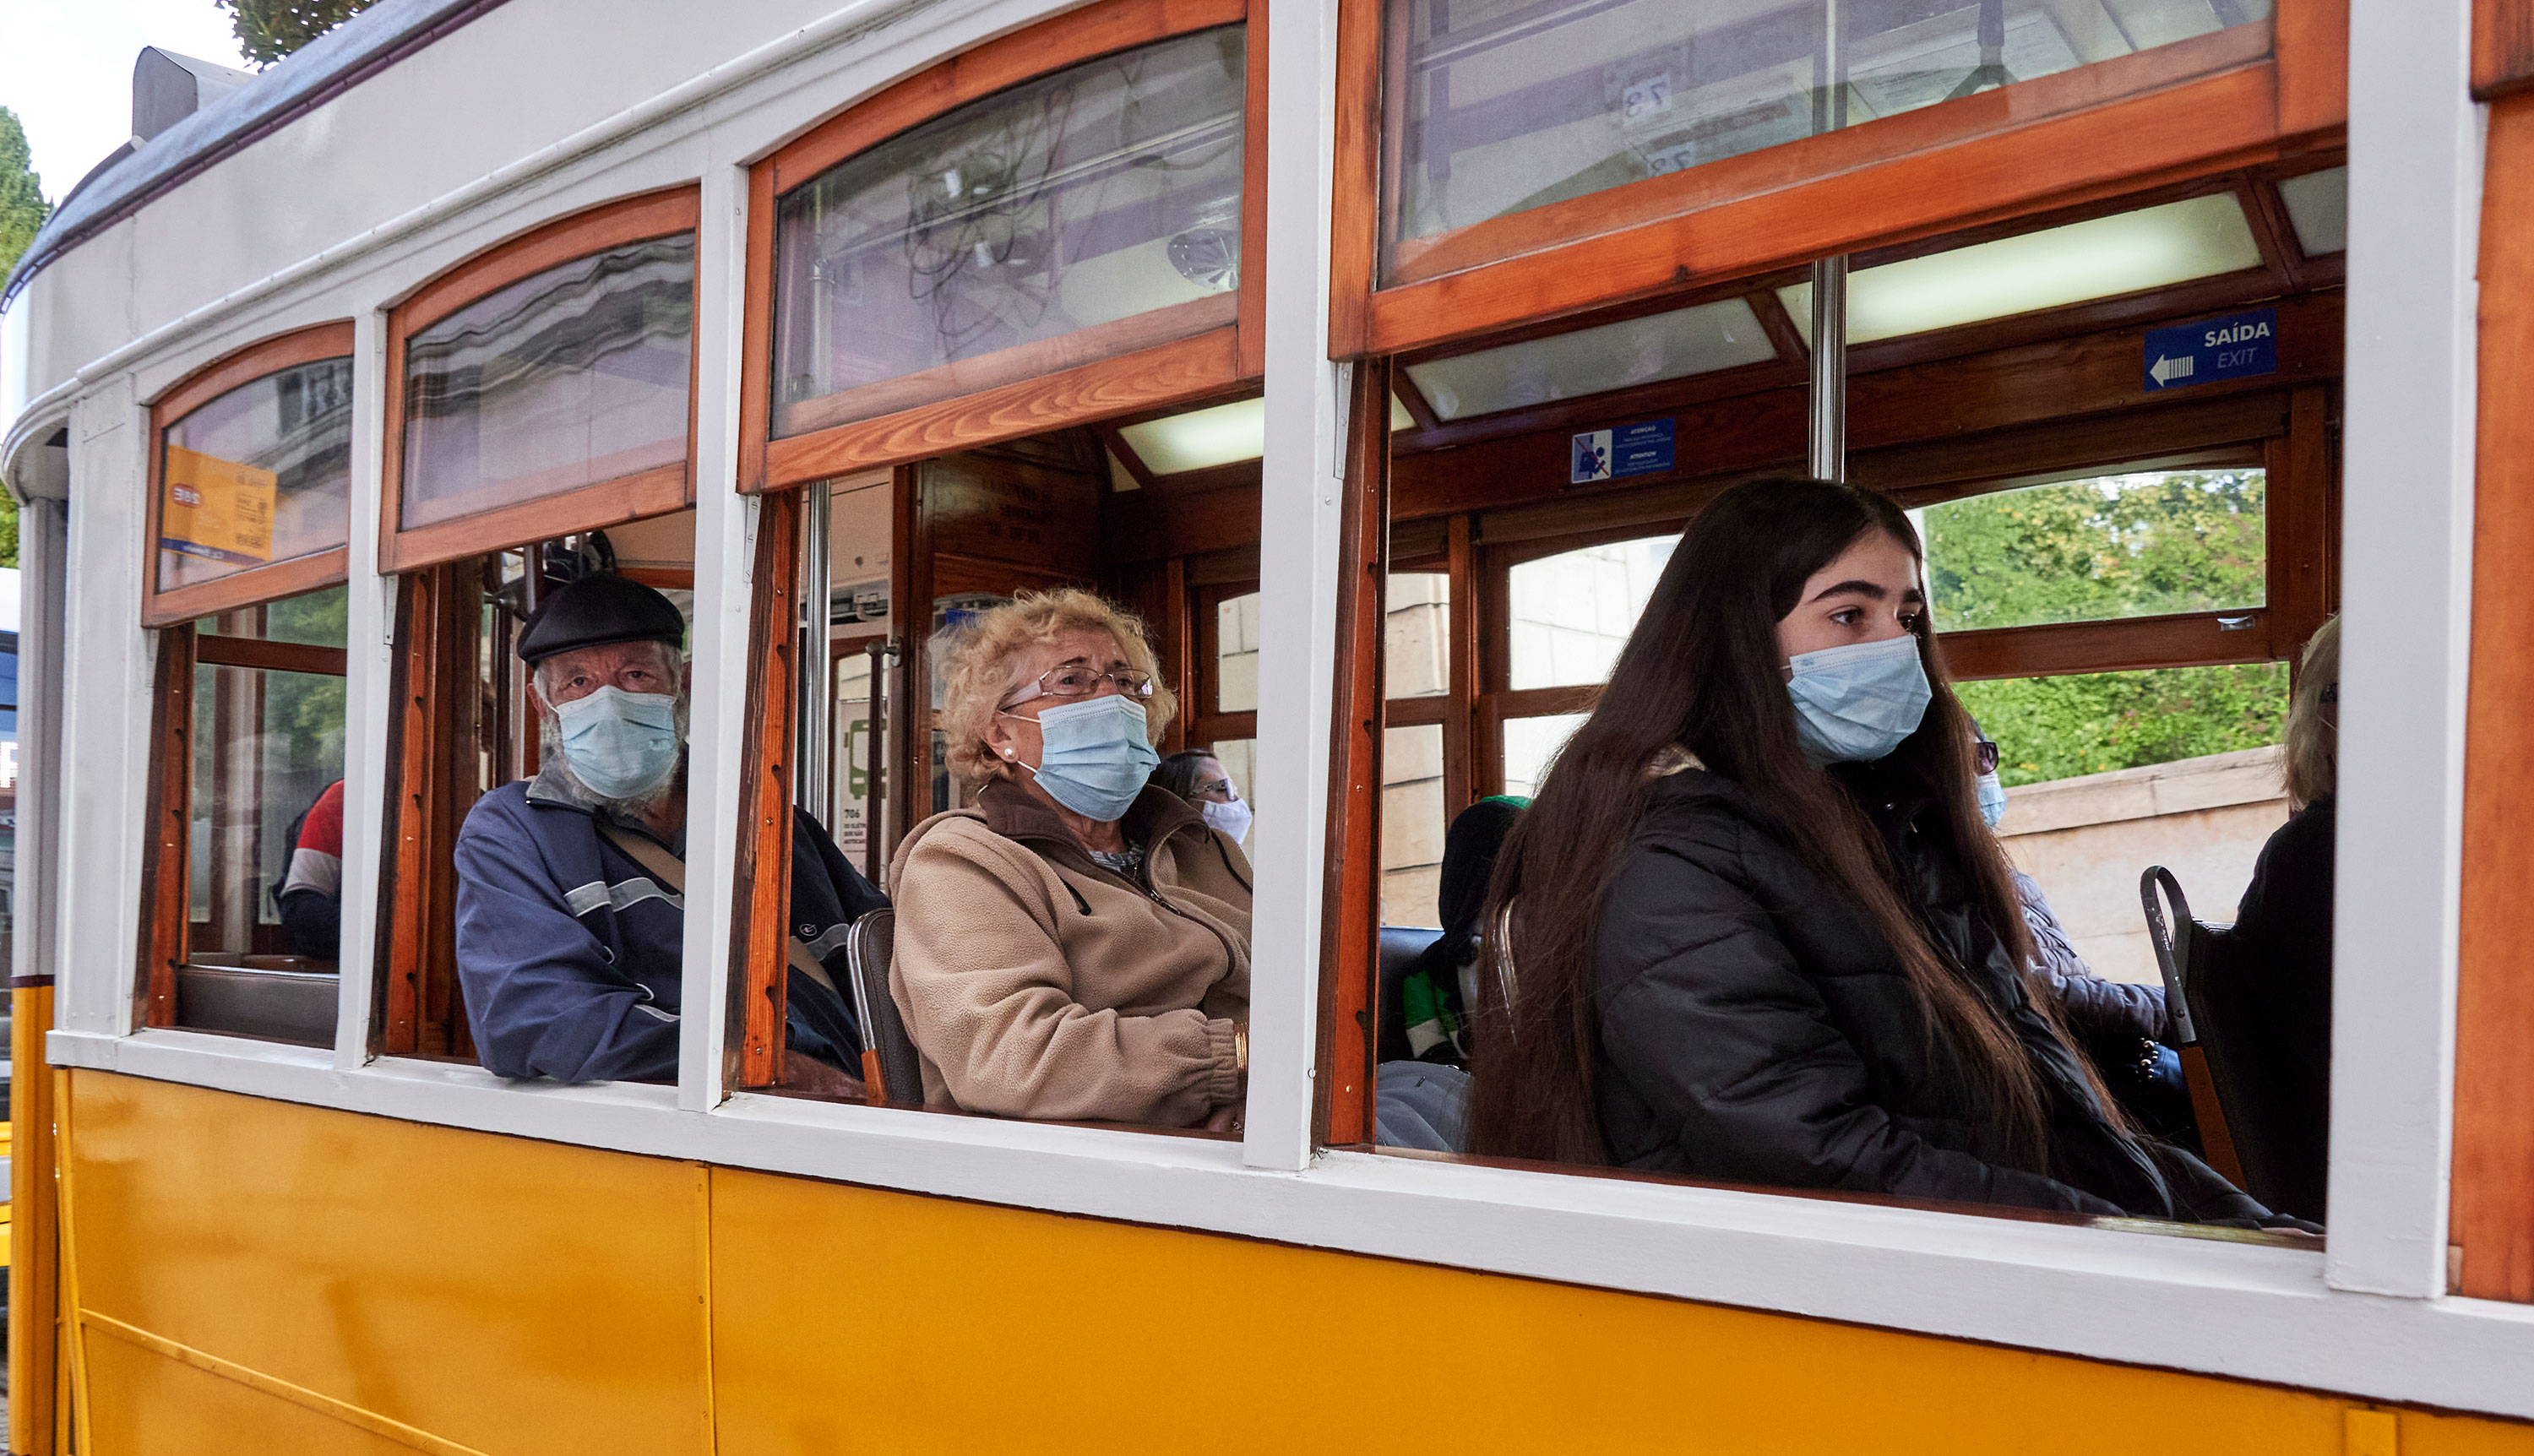 Passengers wear face masks while riding on a tram in Lisbon, Portugal on October 23.